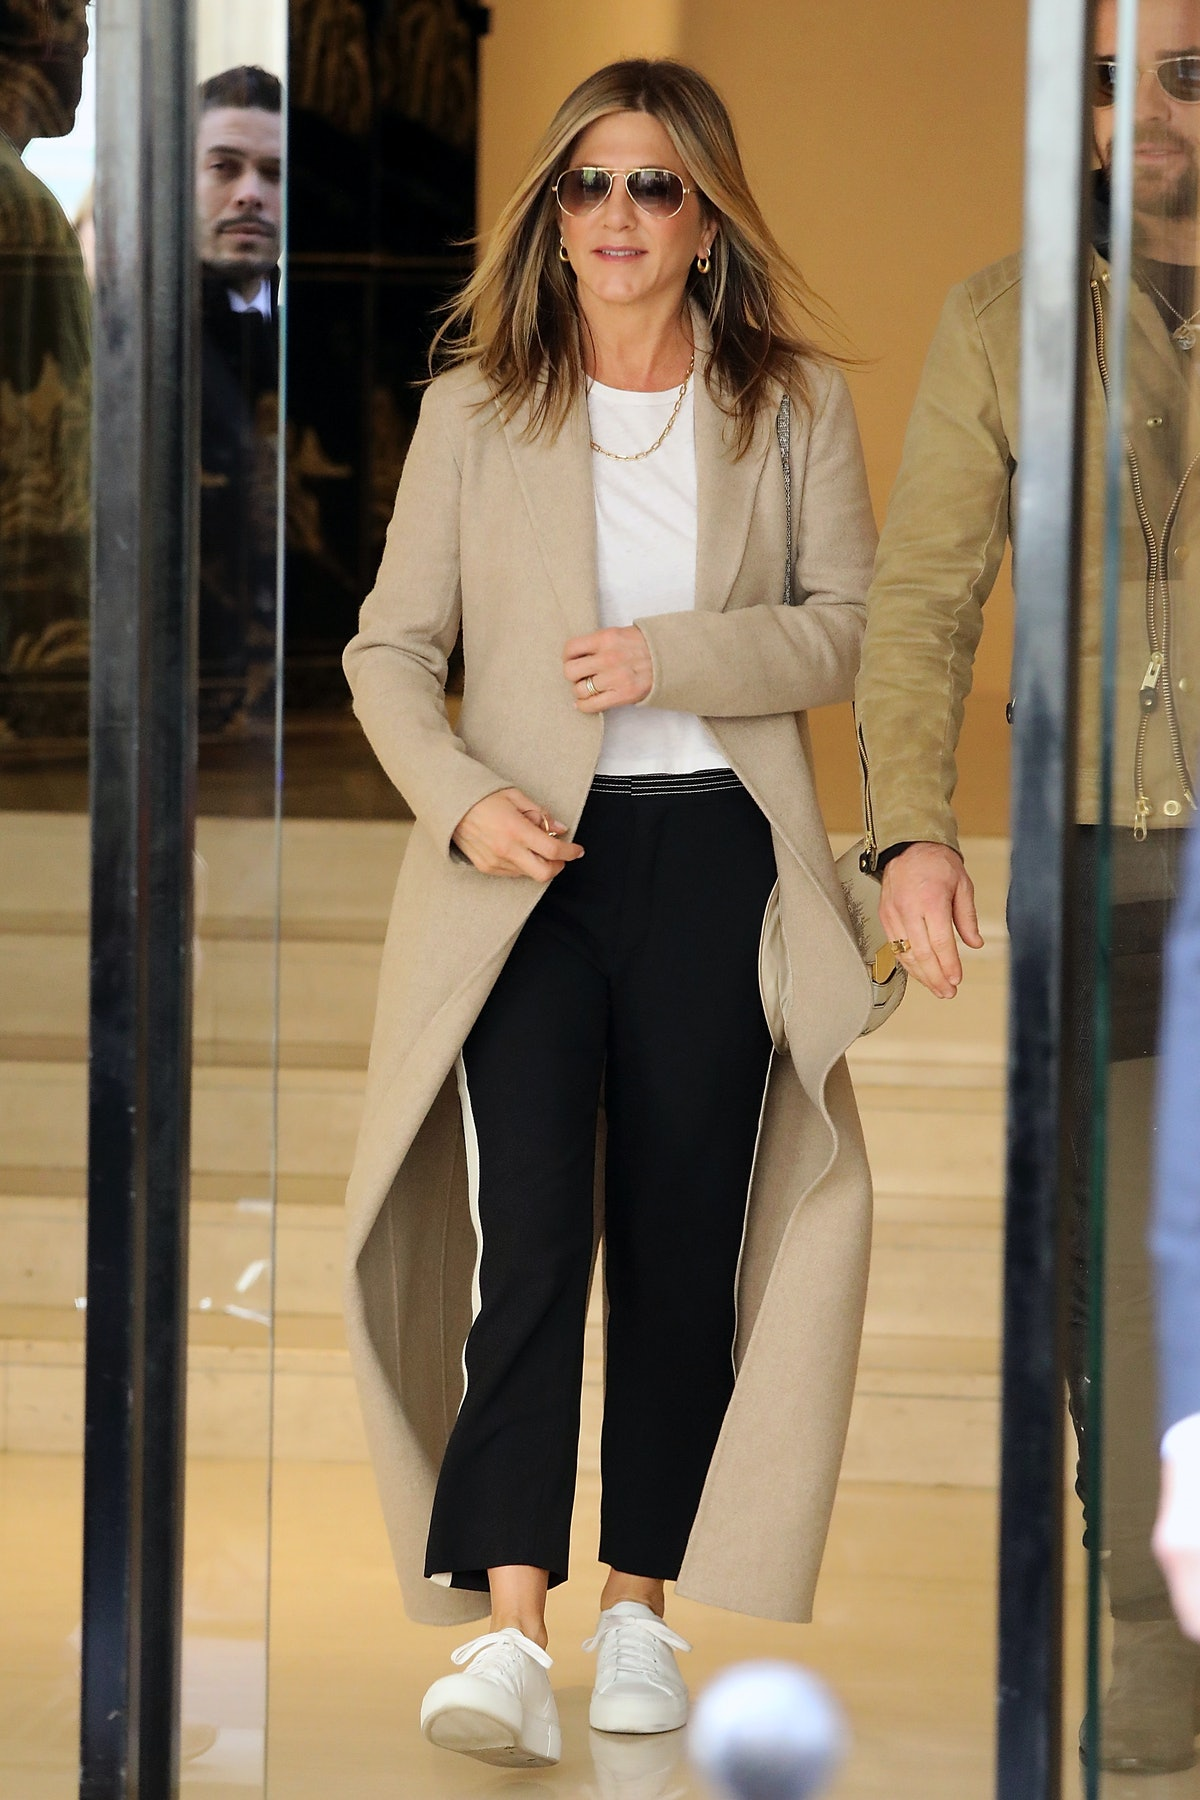 Jennifer Aniston wears Celine Box crossbody bag while leaving a Chanel store on April 12, 2017 in Pa...